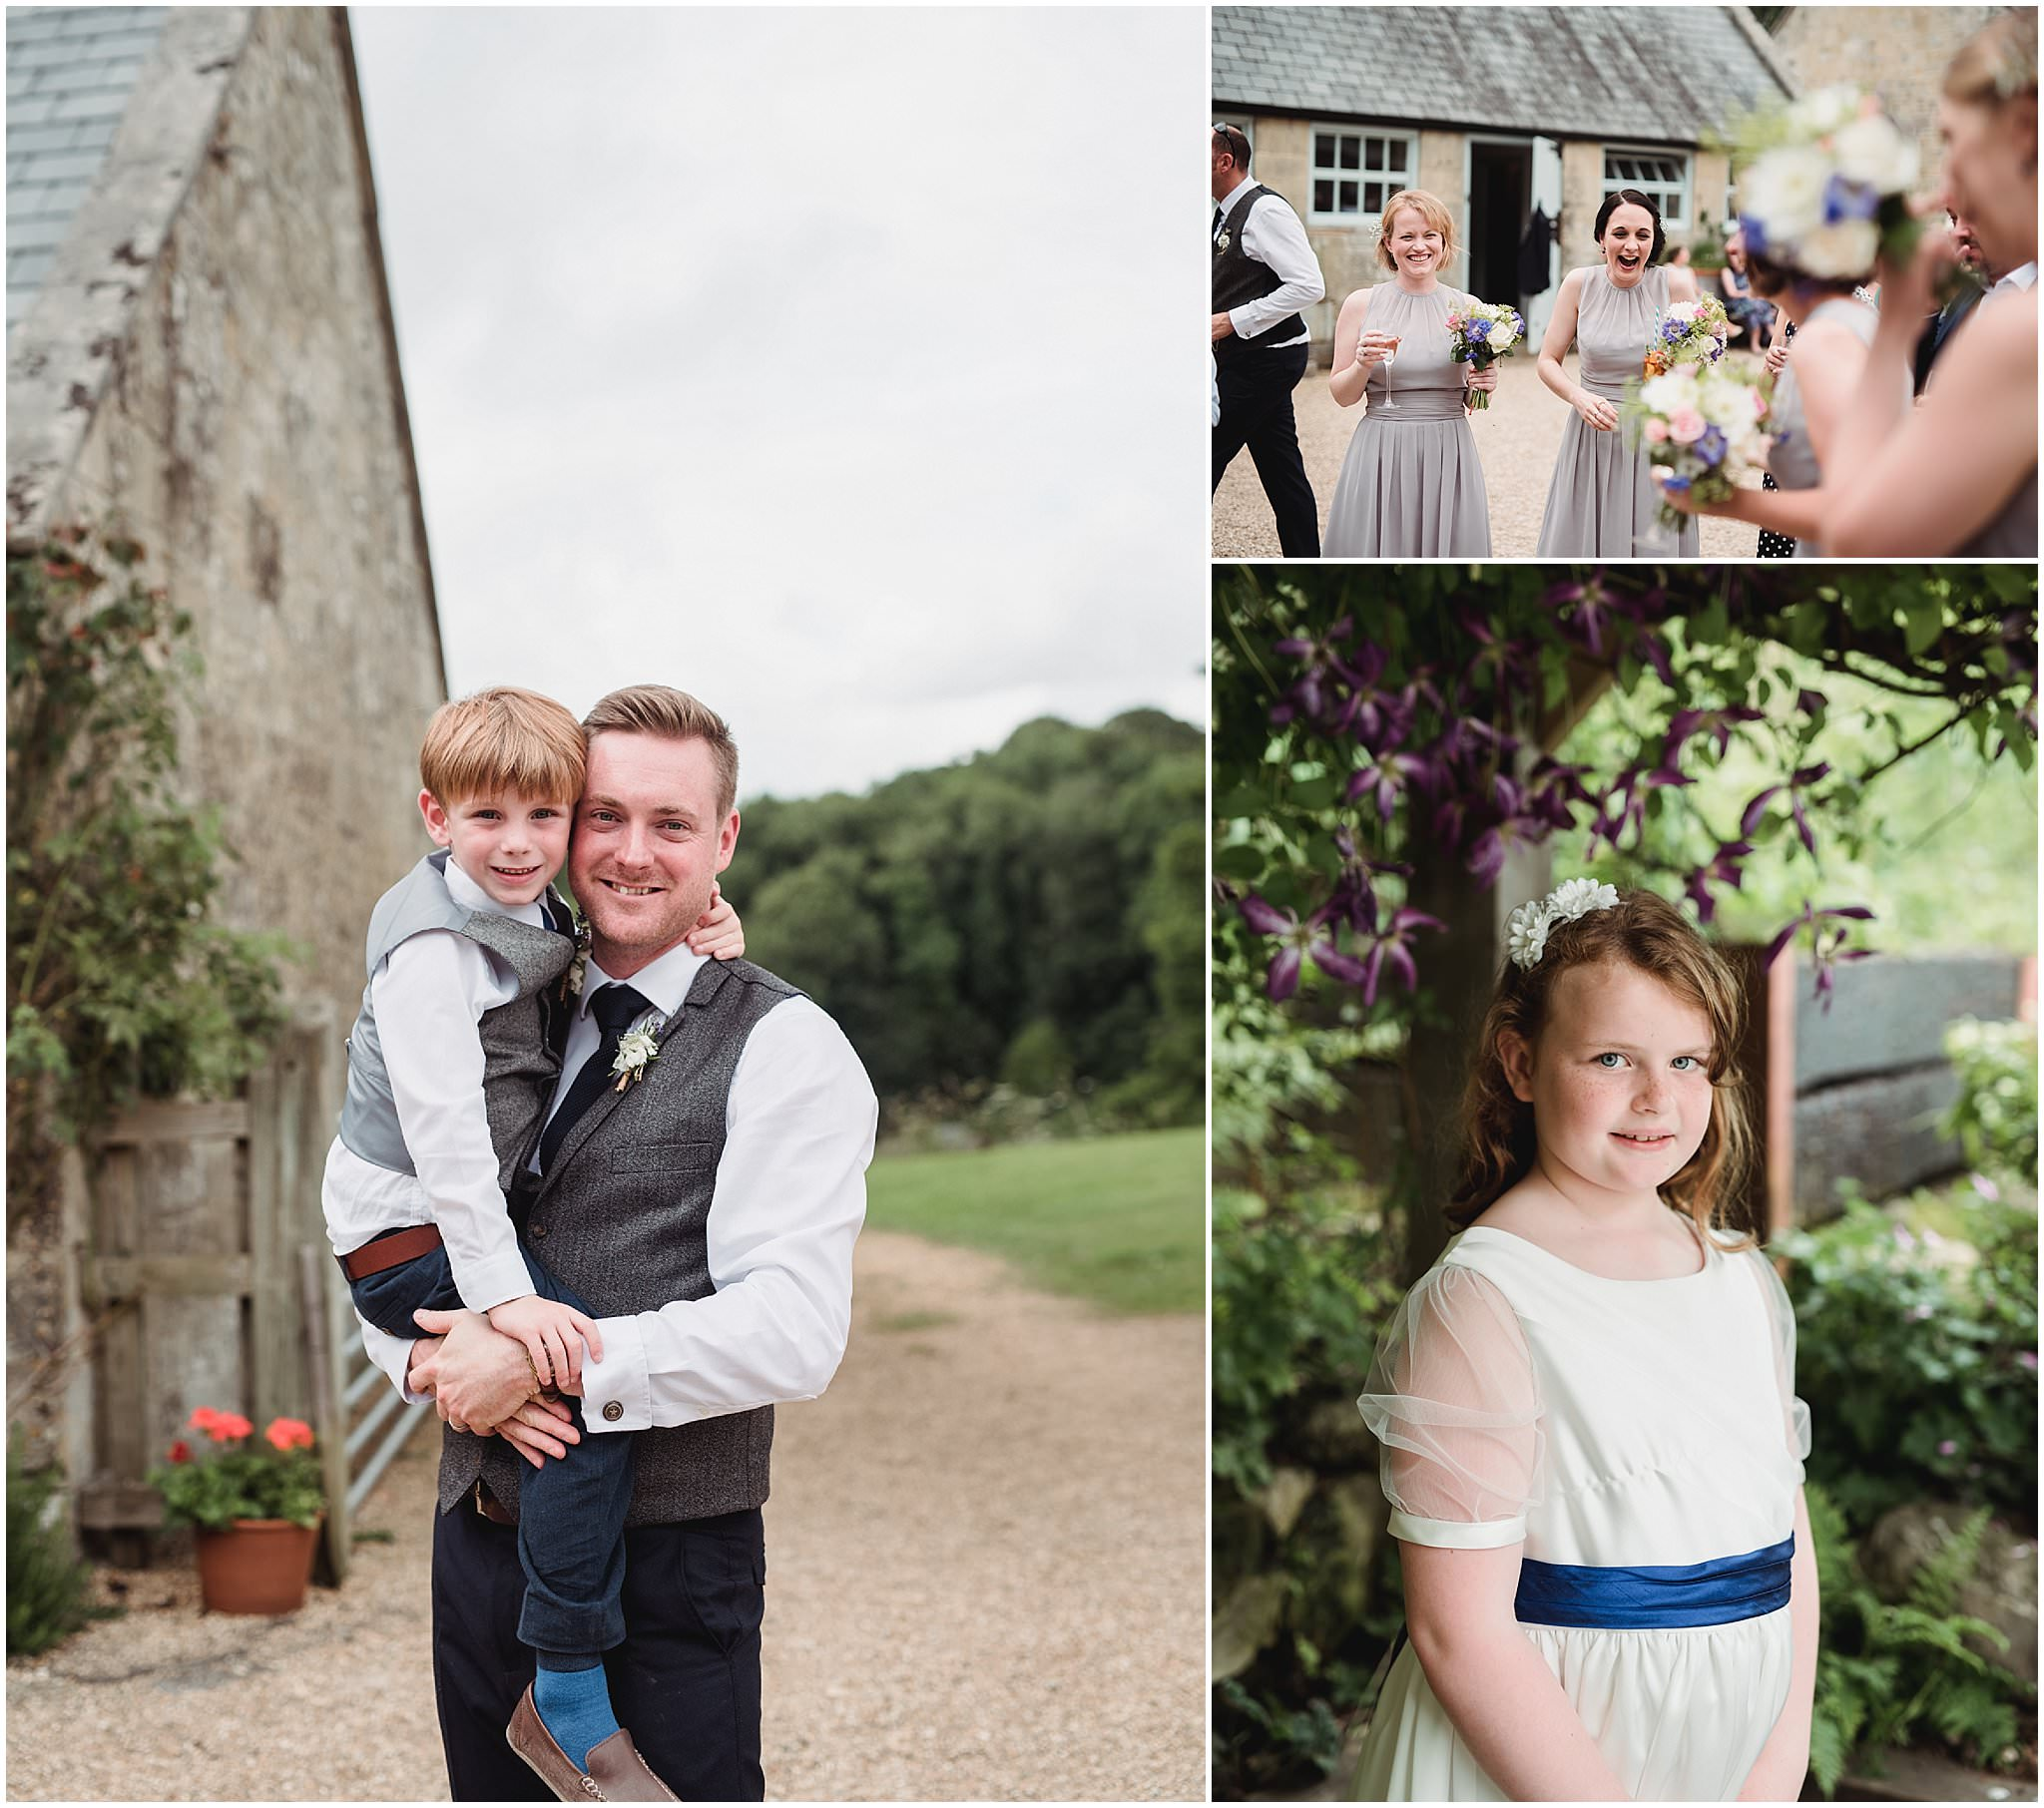 fay & tim wedding at ashley wood farm_0472